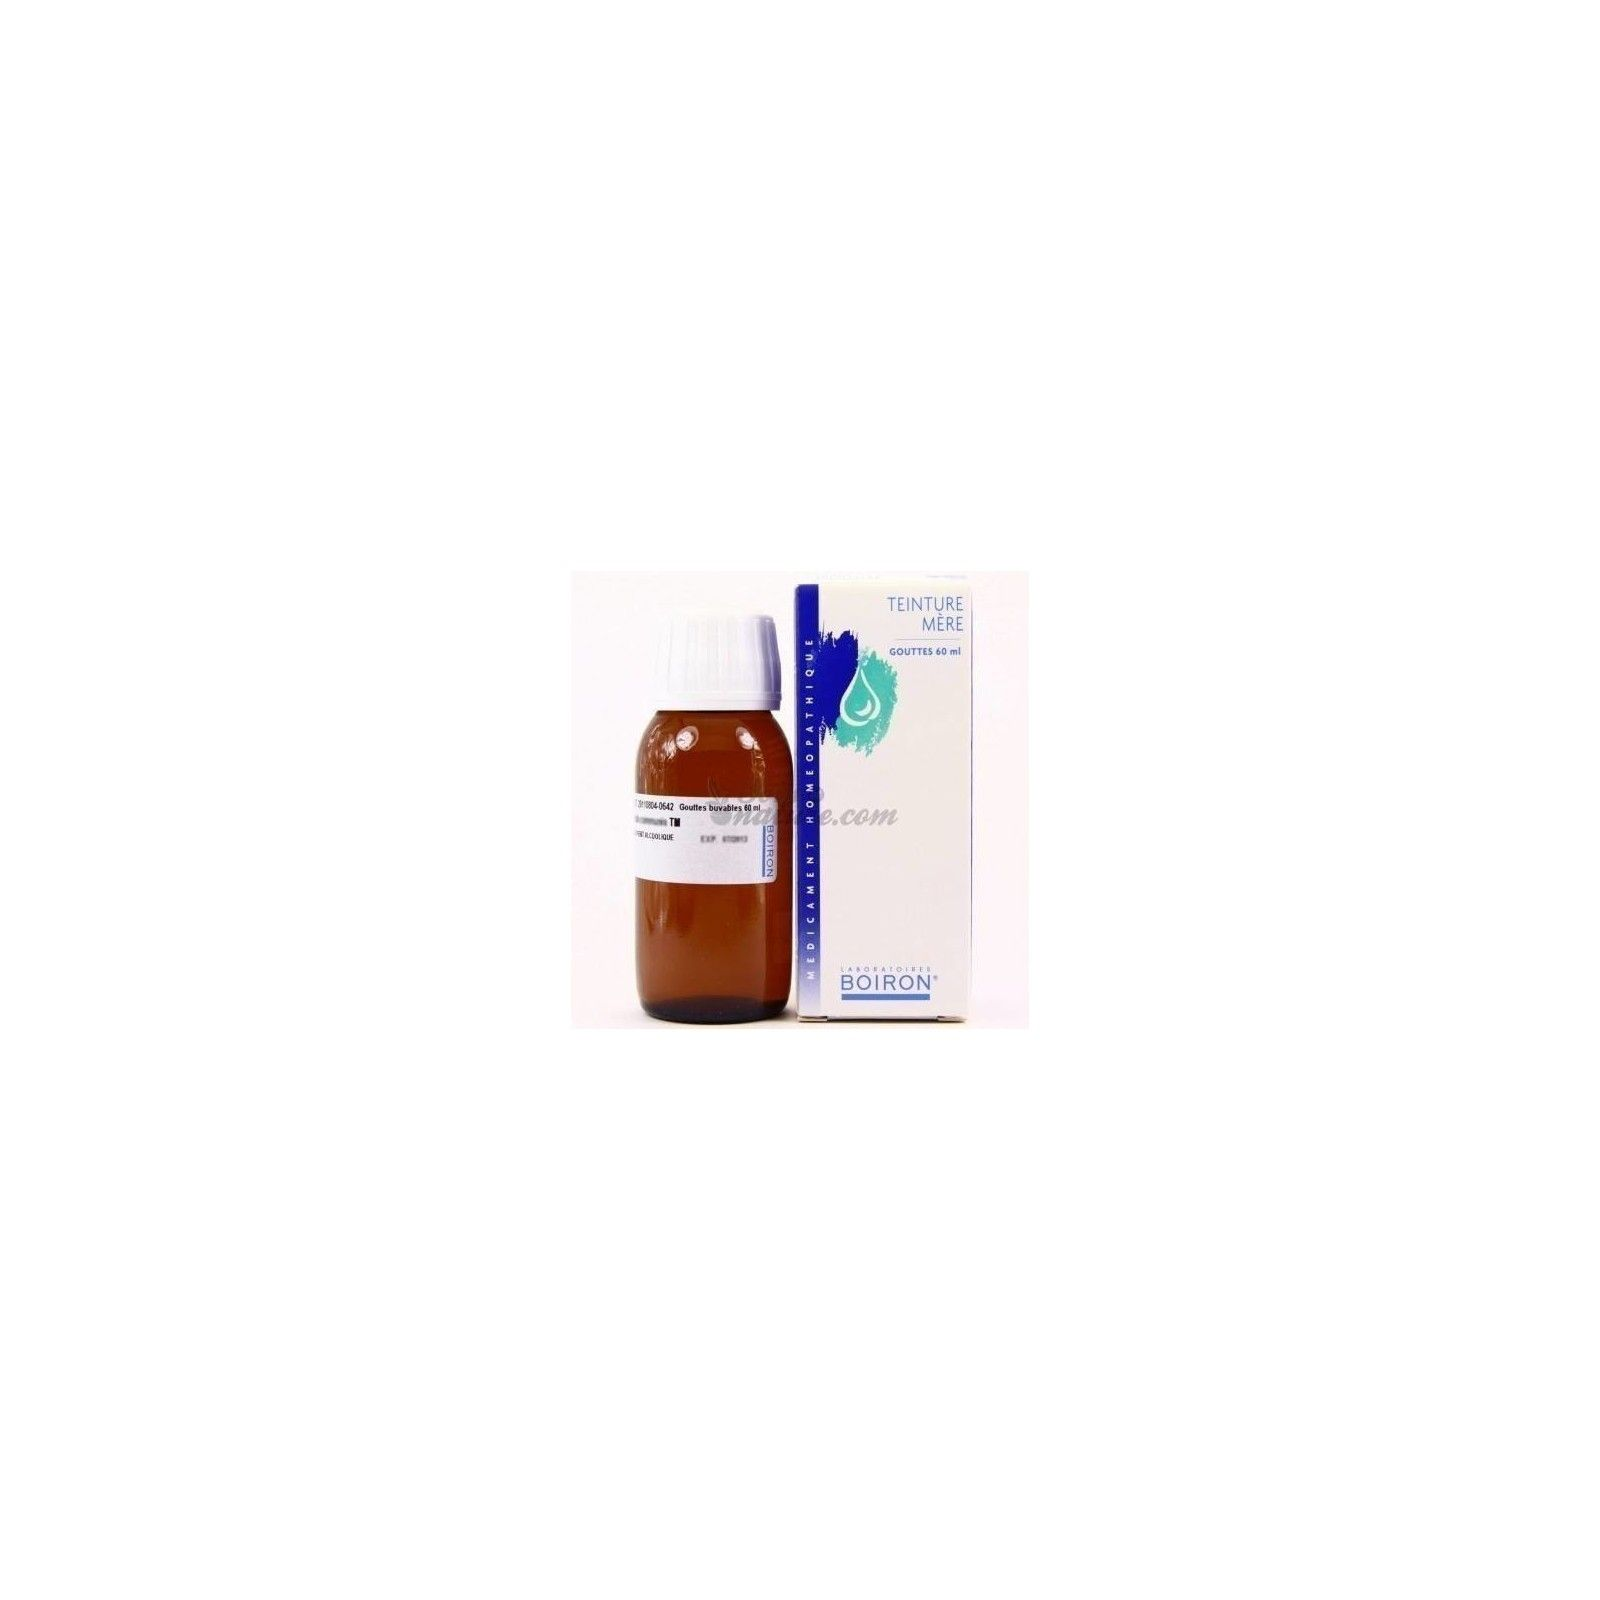 Boiron Dilutions 30ml for CA9.42